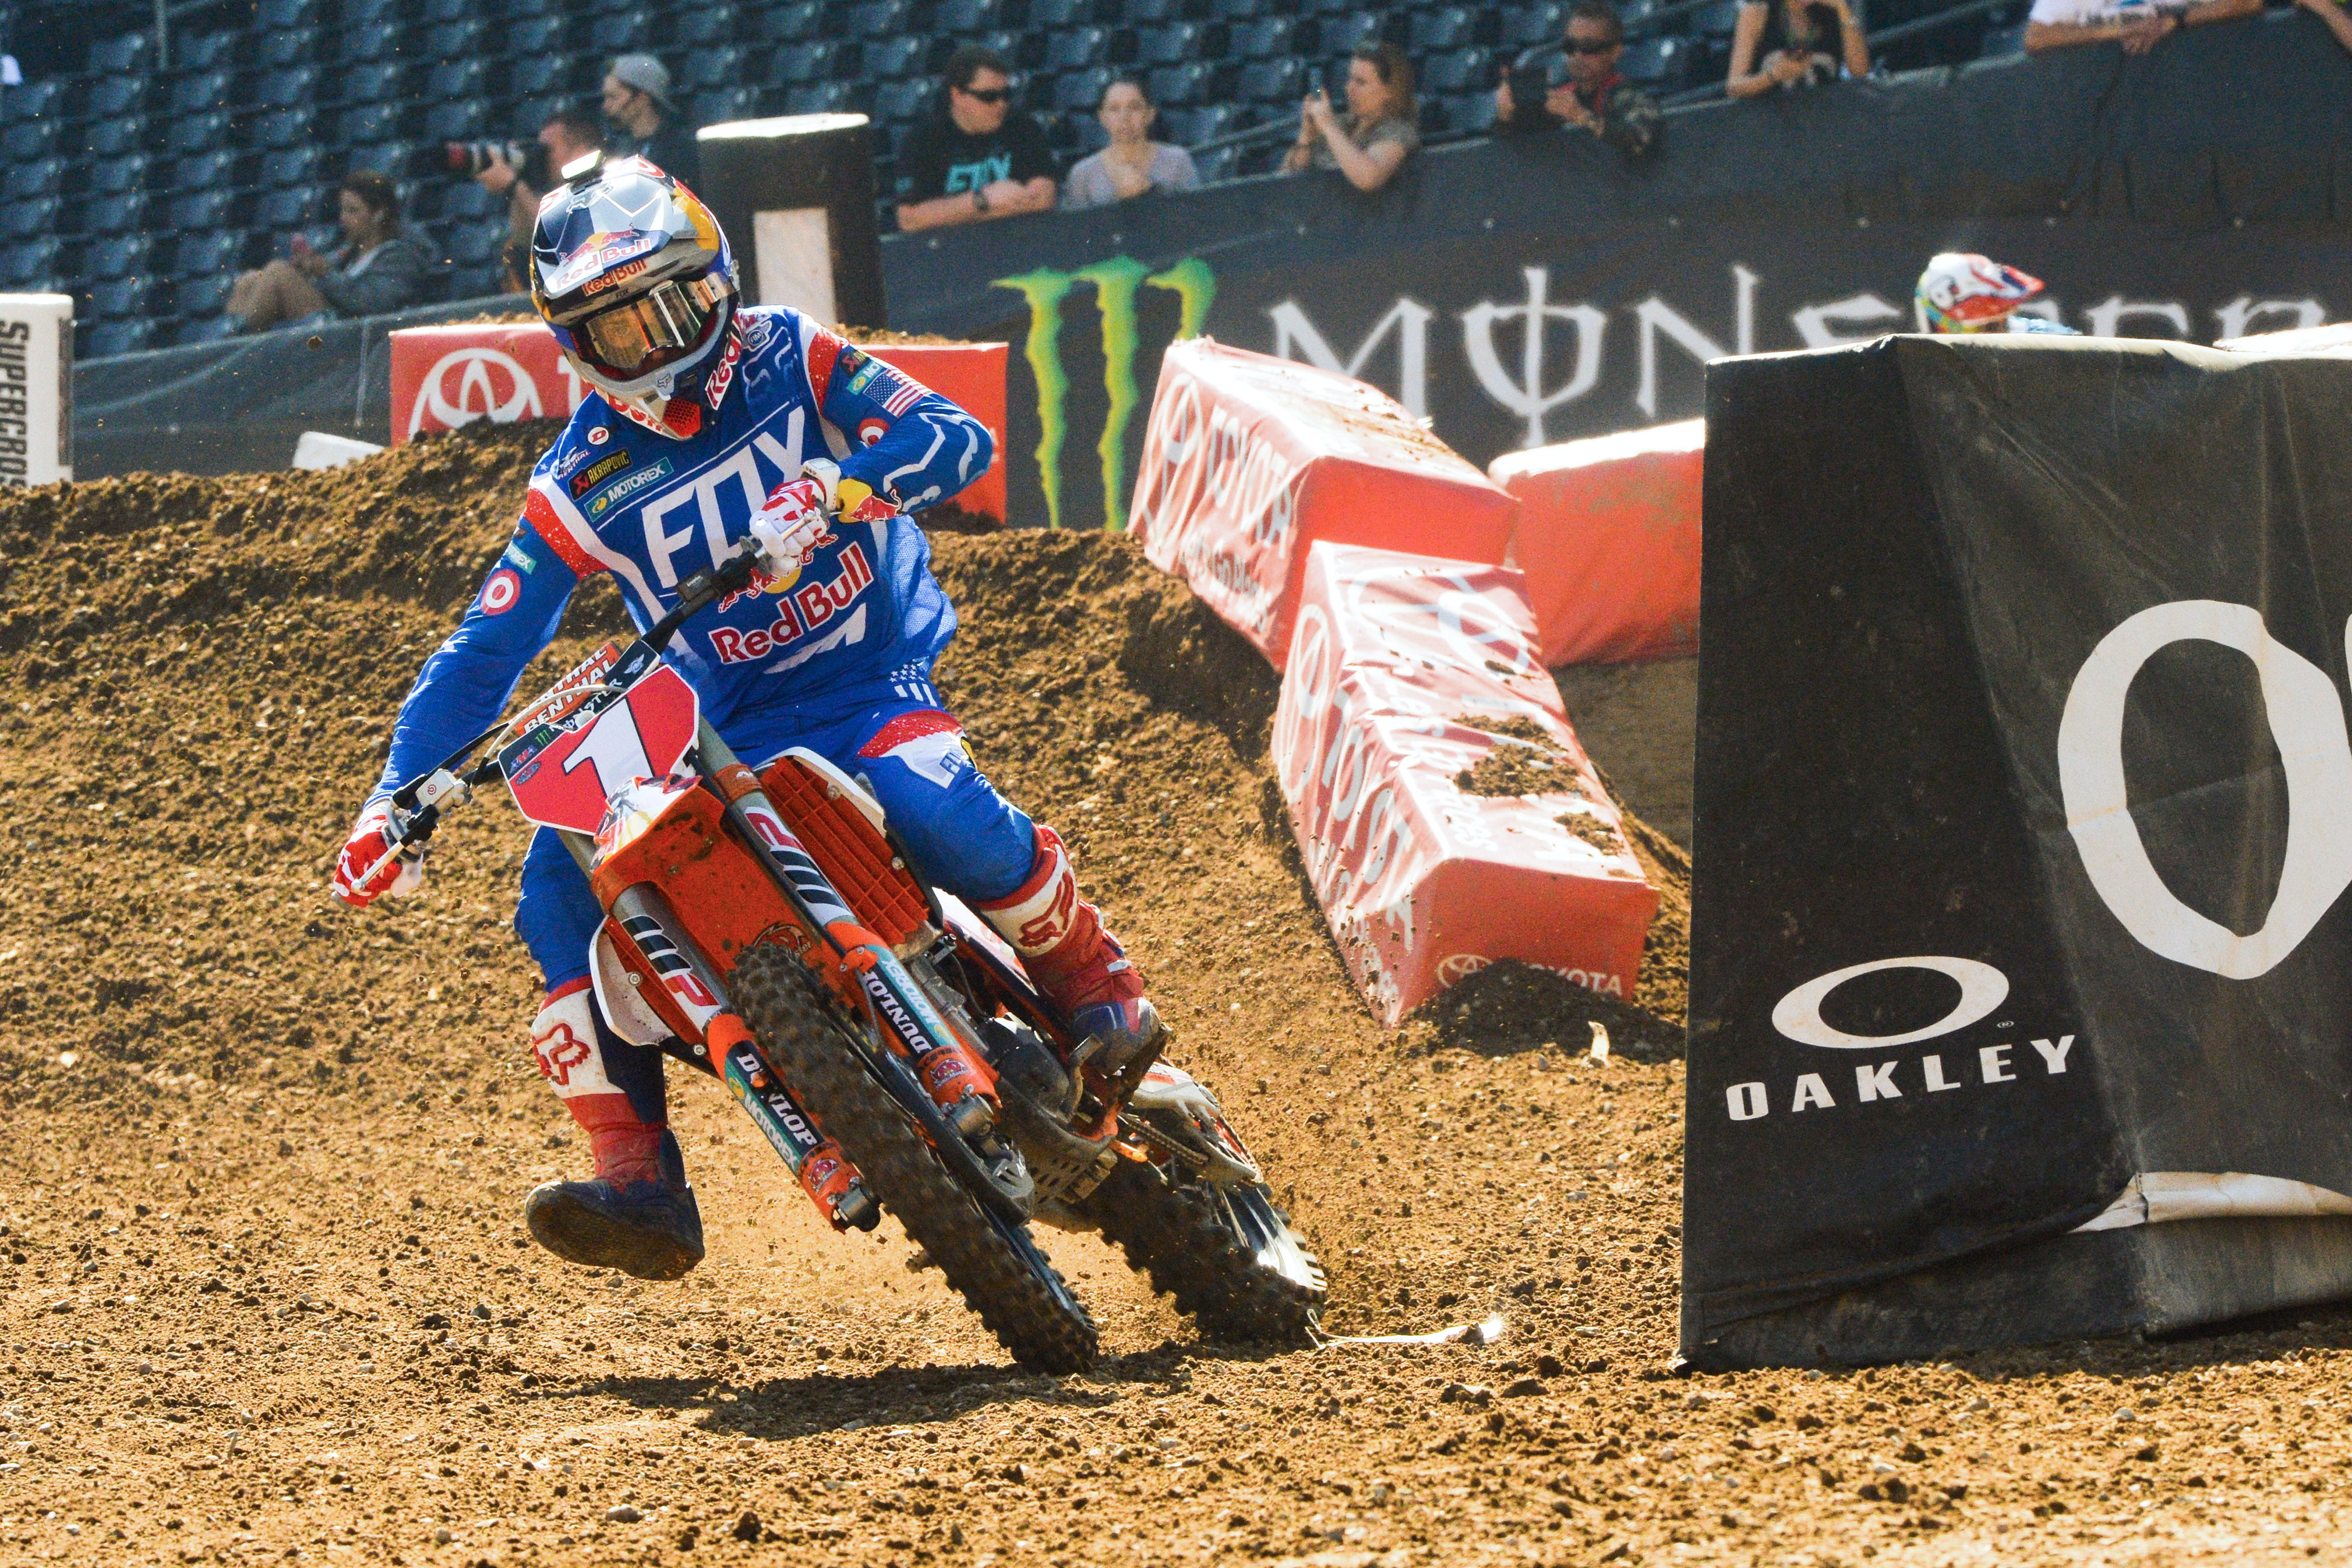 Defending Supercross Champion Ryan Dungey showing how it's done as he exits a flat right-hand turn on his KTM 450 SX/F